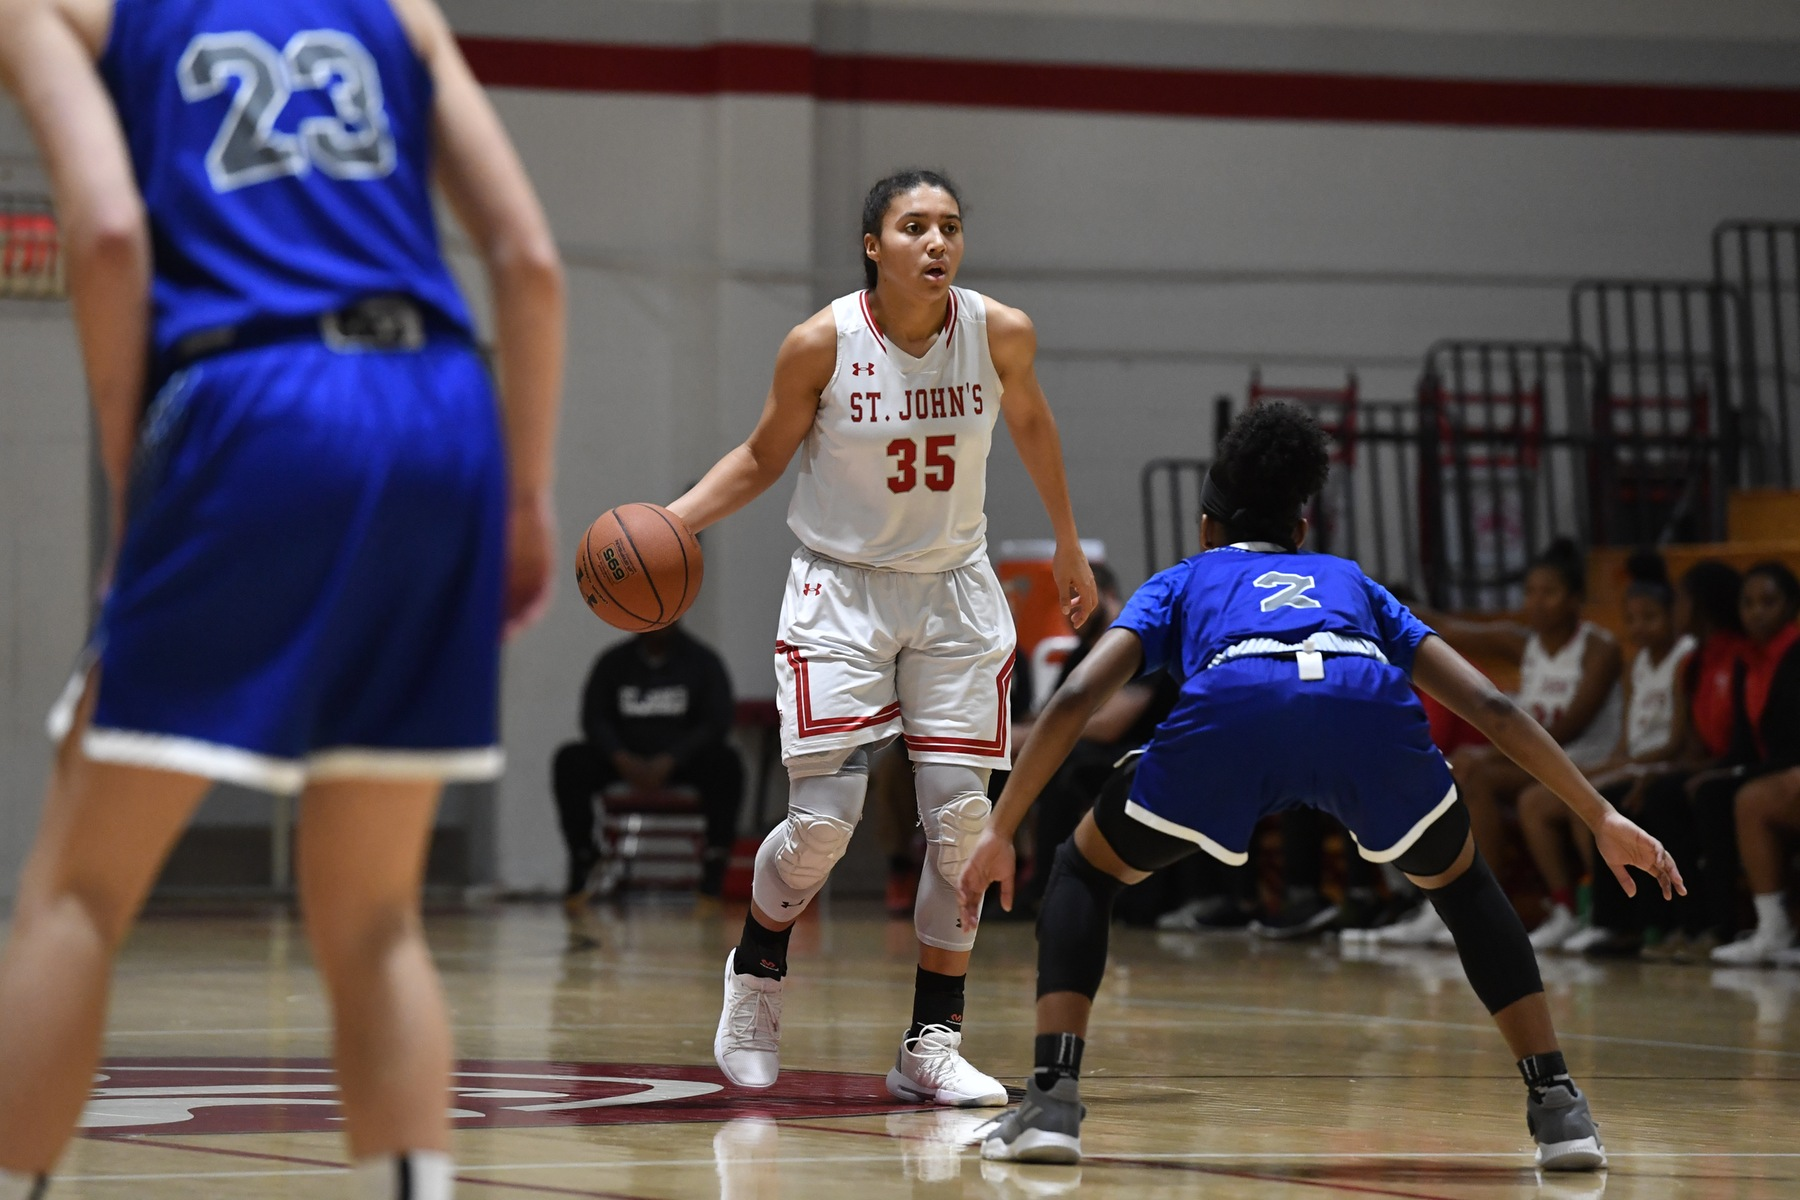 Sophomore Azzi Fudd (pictured in an earlier game) was kept in check, however still finished with 18 points in the win. (Photo from St. John's)